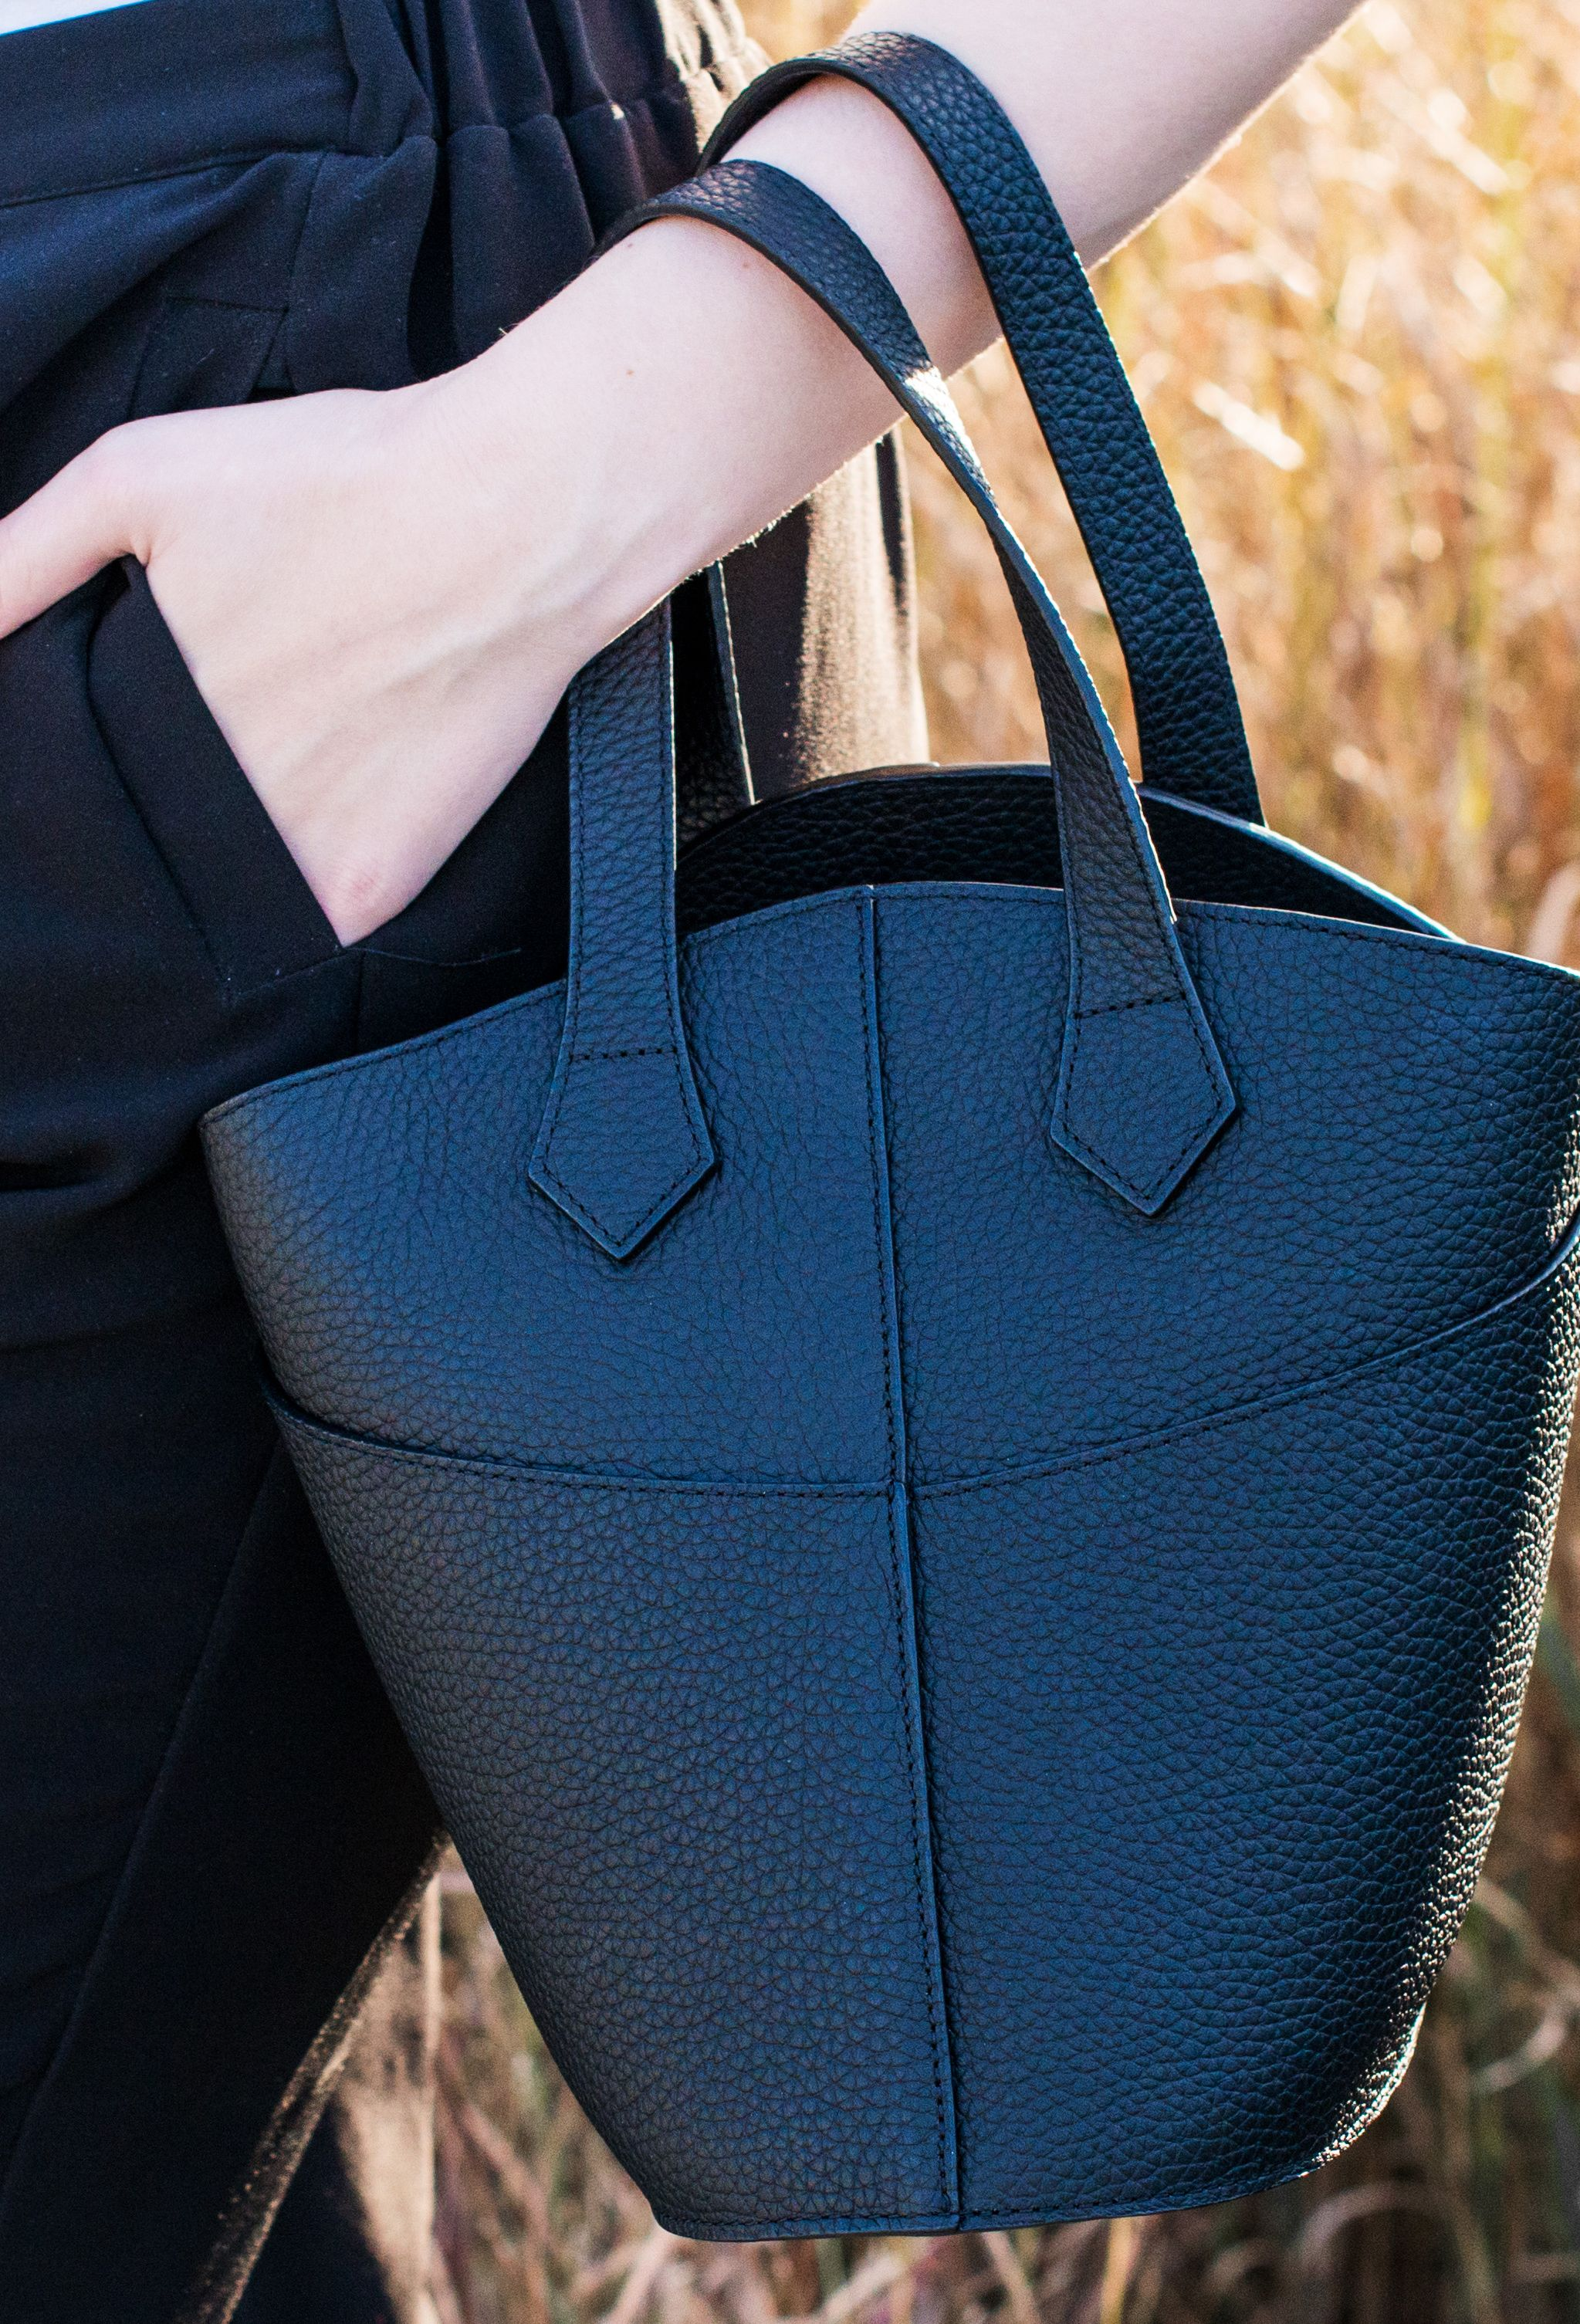 95e7e9e5d585 LEATHER + STITCHES  Palla Handbags - Handcrafted Quality Leather Handbags - Minimal  design for the effortlessly cool chick.    Featured here  K-Bag -Mini ...